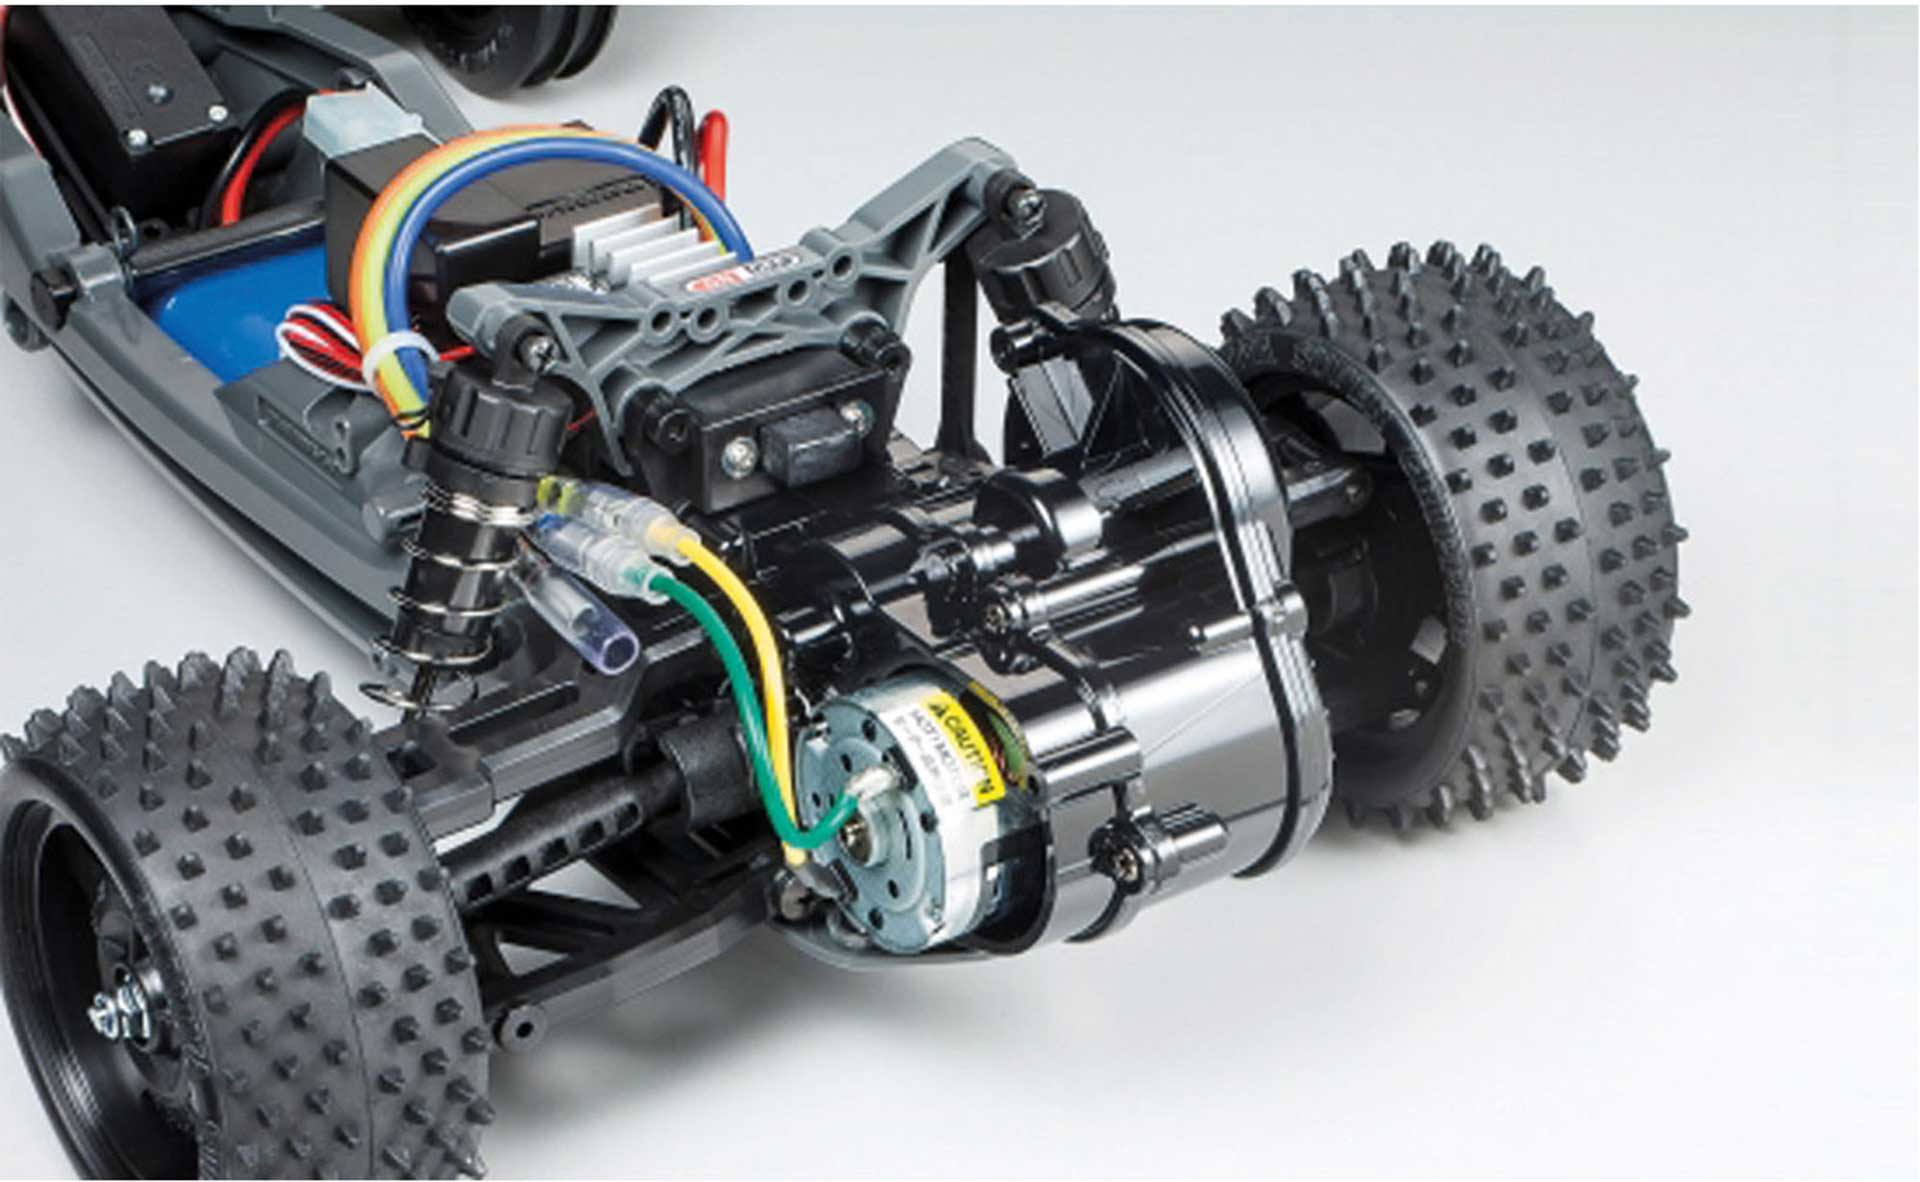 TAMIYA RACING FIGHTER DT-03 THE REAL KIT